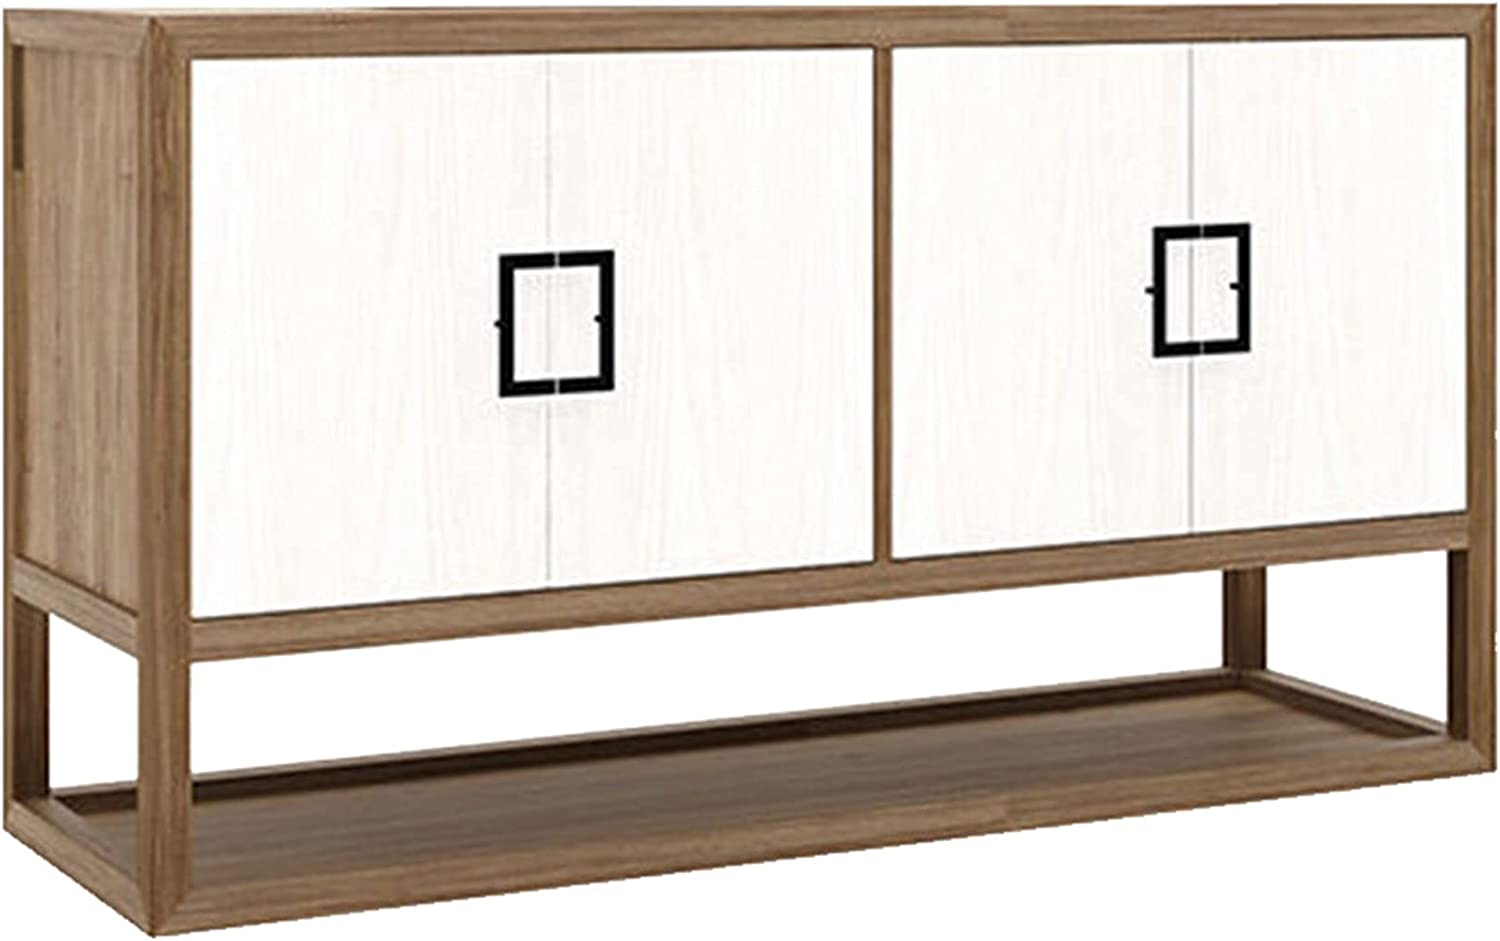 QINJIE Large-scale sale Buffet Sideboard Wood Max 72% OFF Cabinet Storage Buf